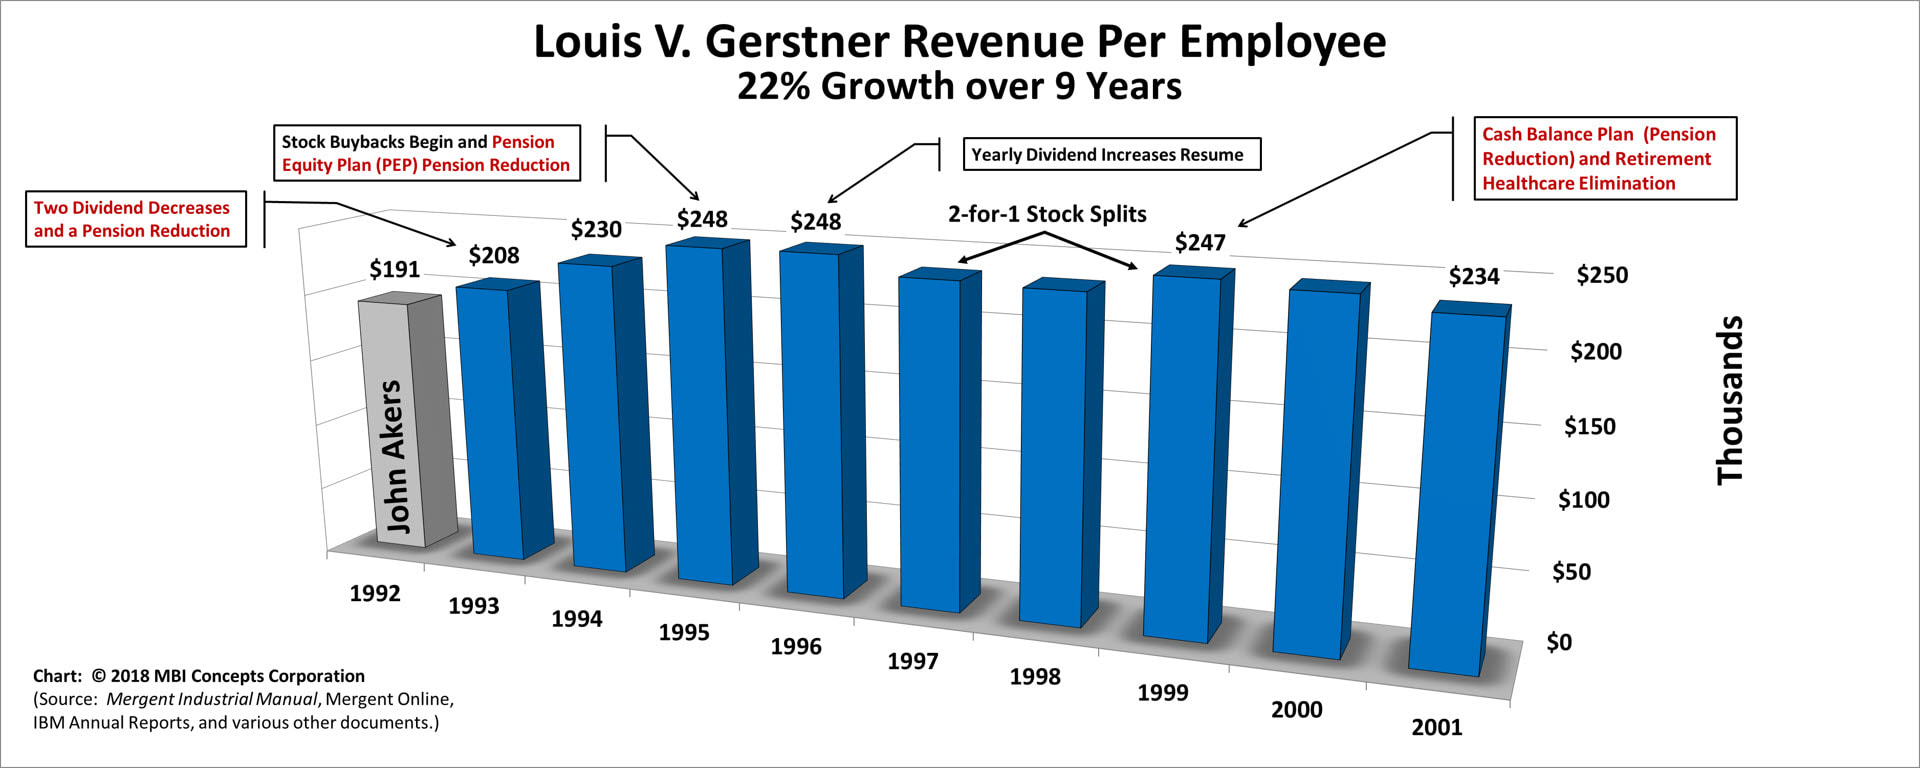 Bar chart of Louis V. Gerstner's Yearly Revenue per Employee over his 9 years as IBM's CEO from 1993 to 2001.